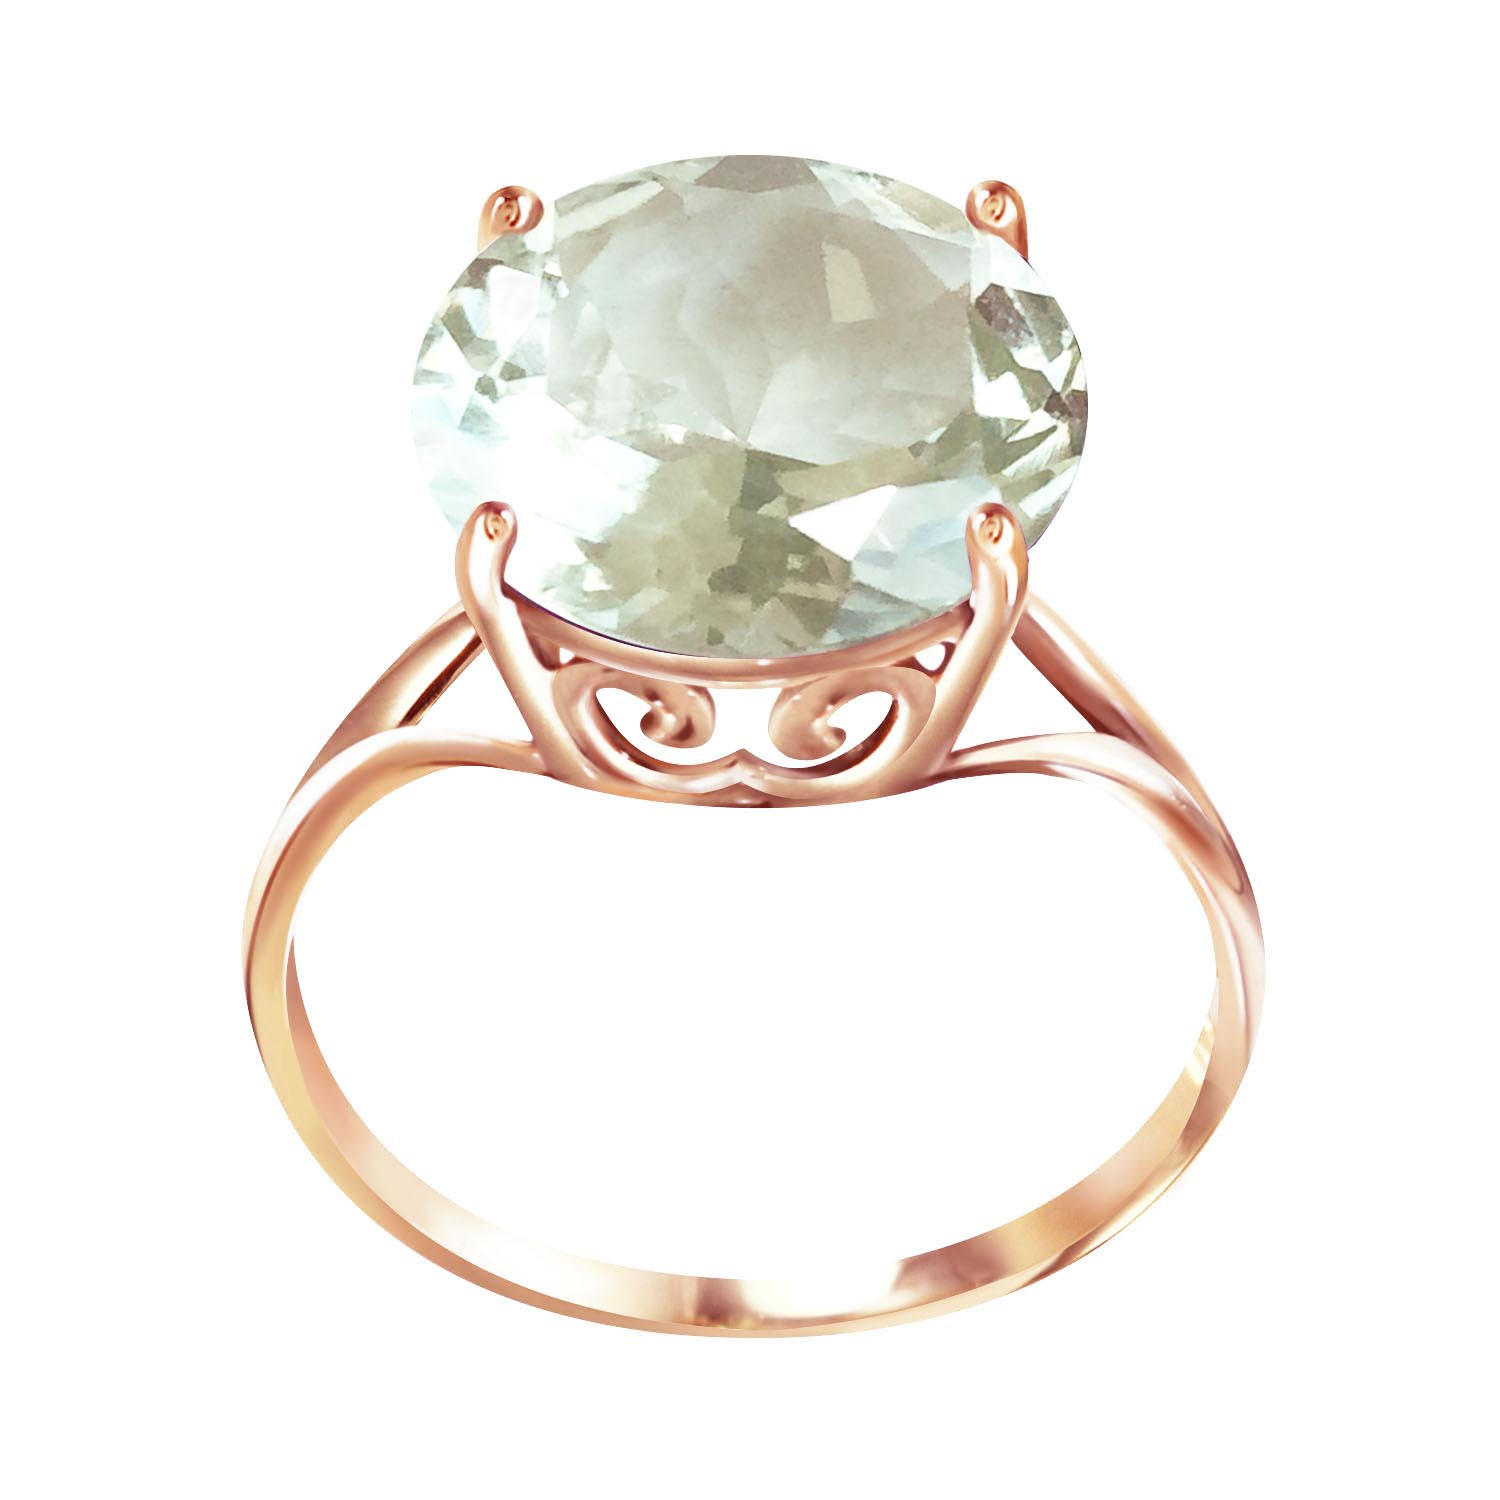 Round Cut Green Amethyst Ring 5.5 ct in 9ct Rose Gold